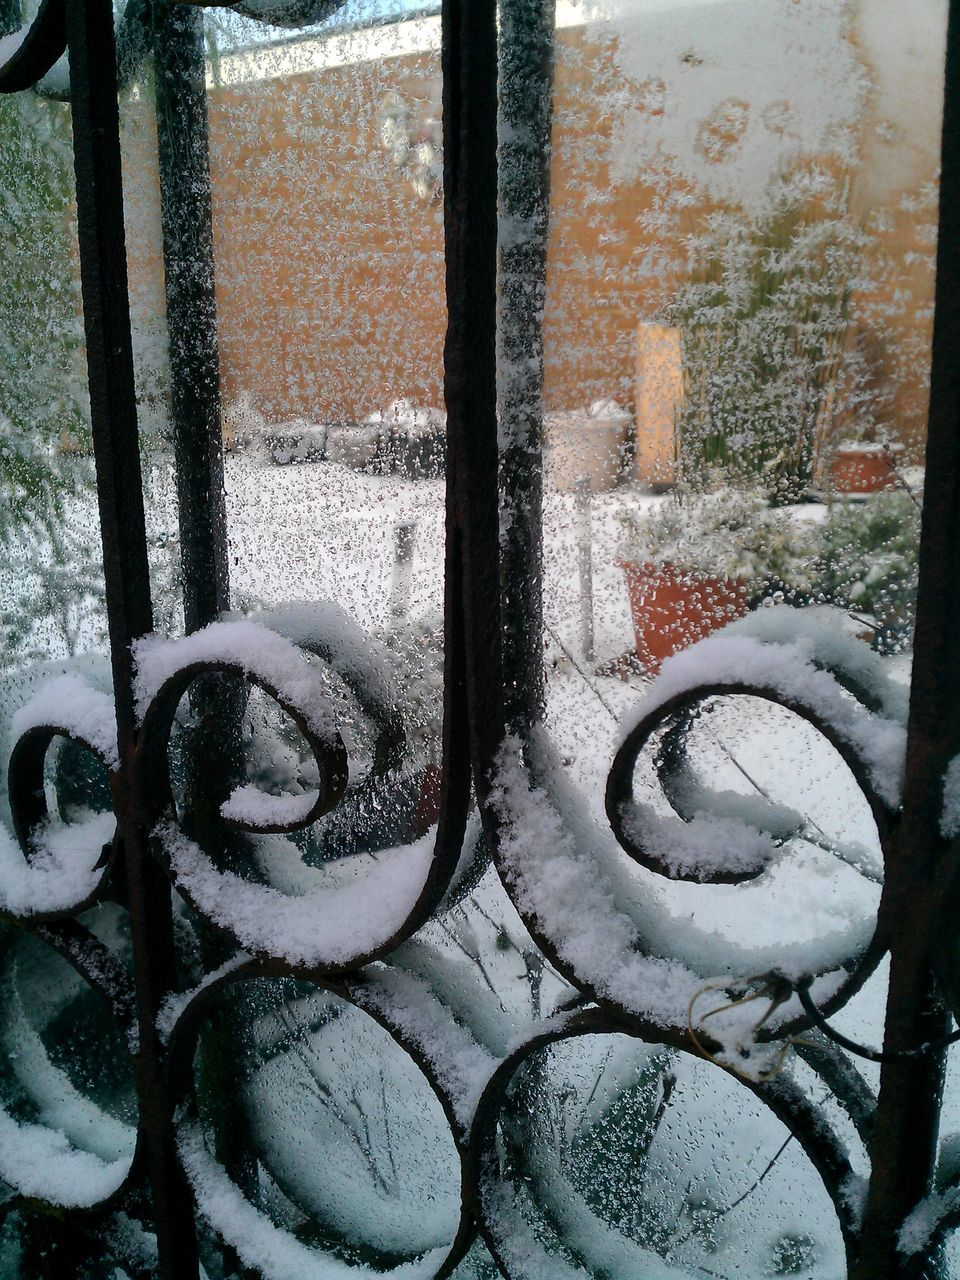 winter, snow, cold temperature, weather, no people, metal, day, window, outdoors, close-up, nature